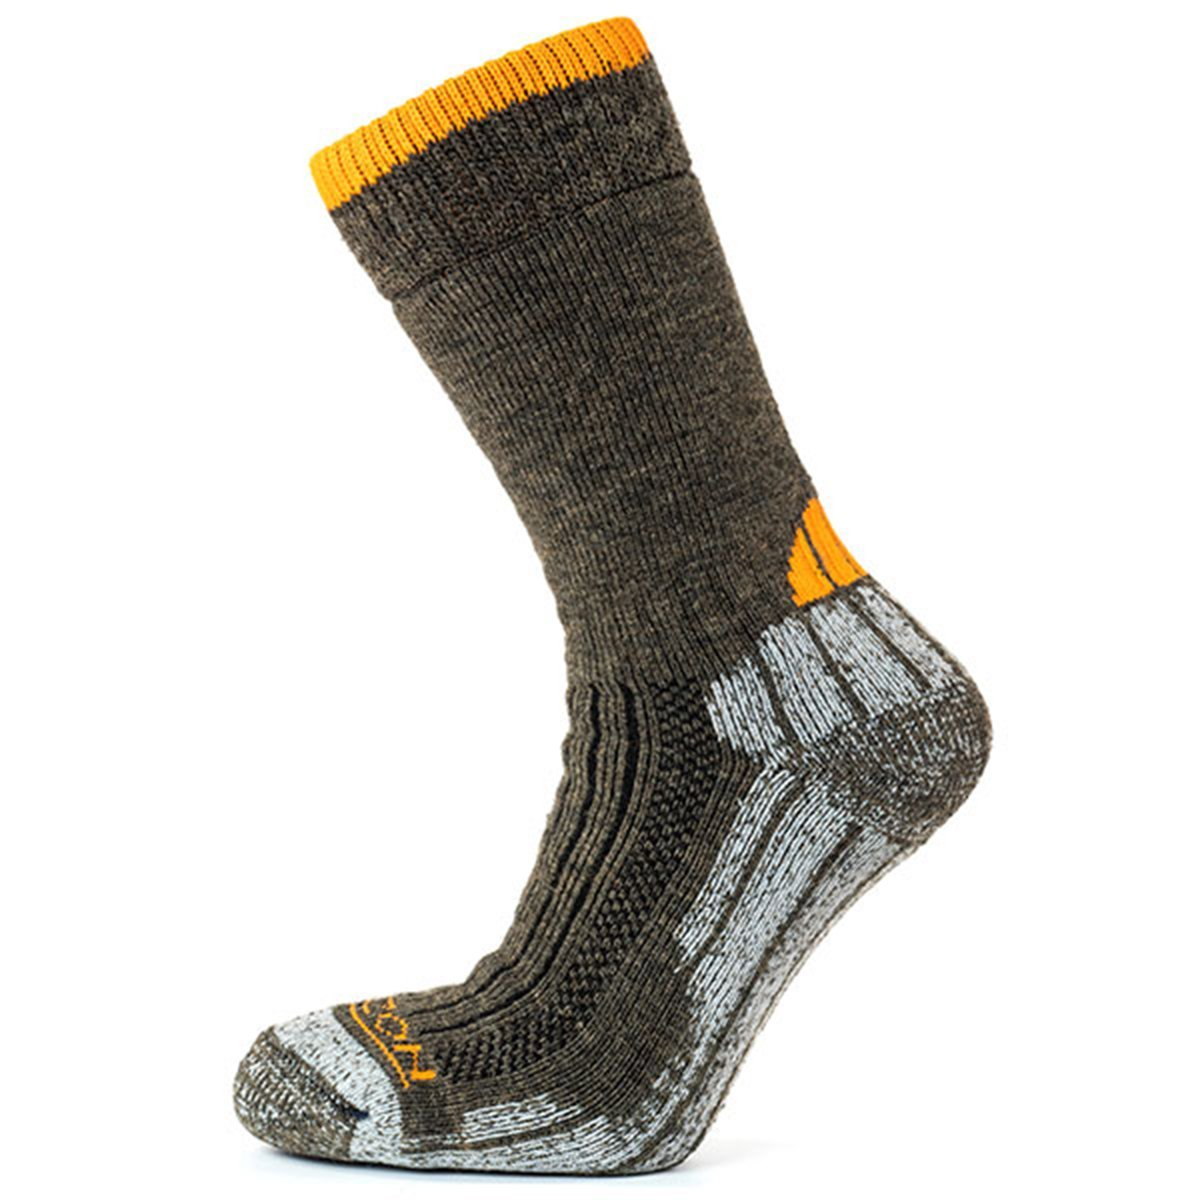 Horizon Socks » Performance Merino Trekker | Mens Merino Wool Socks - Olive Marl / Orange